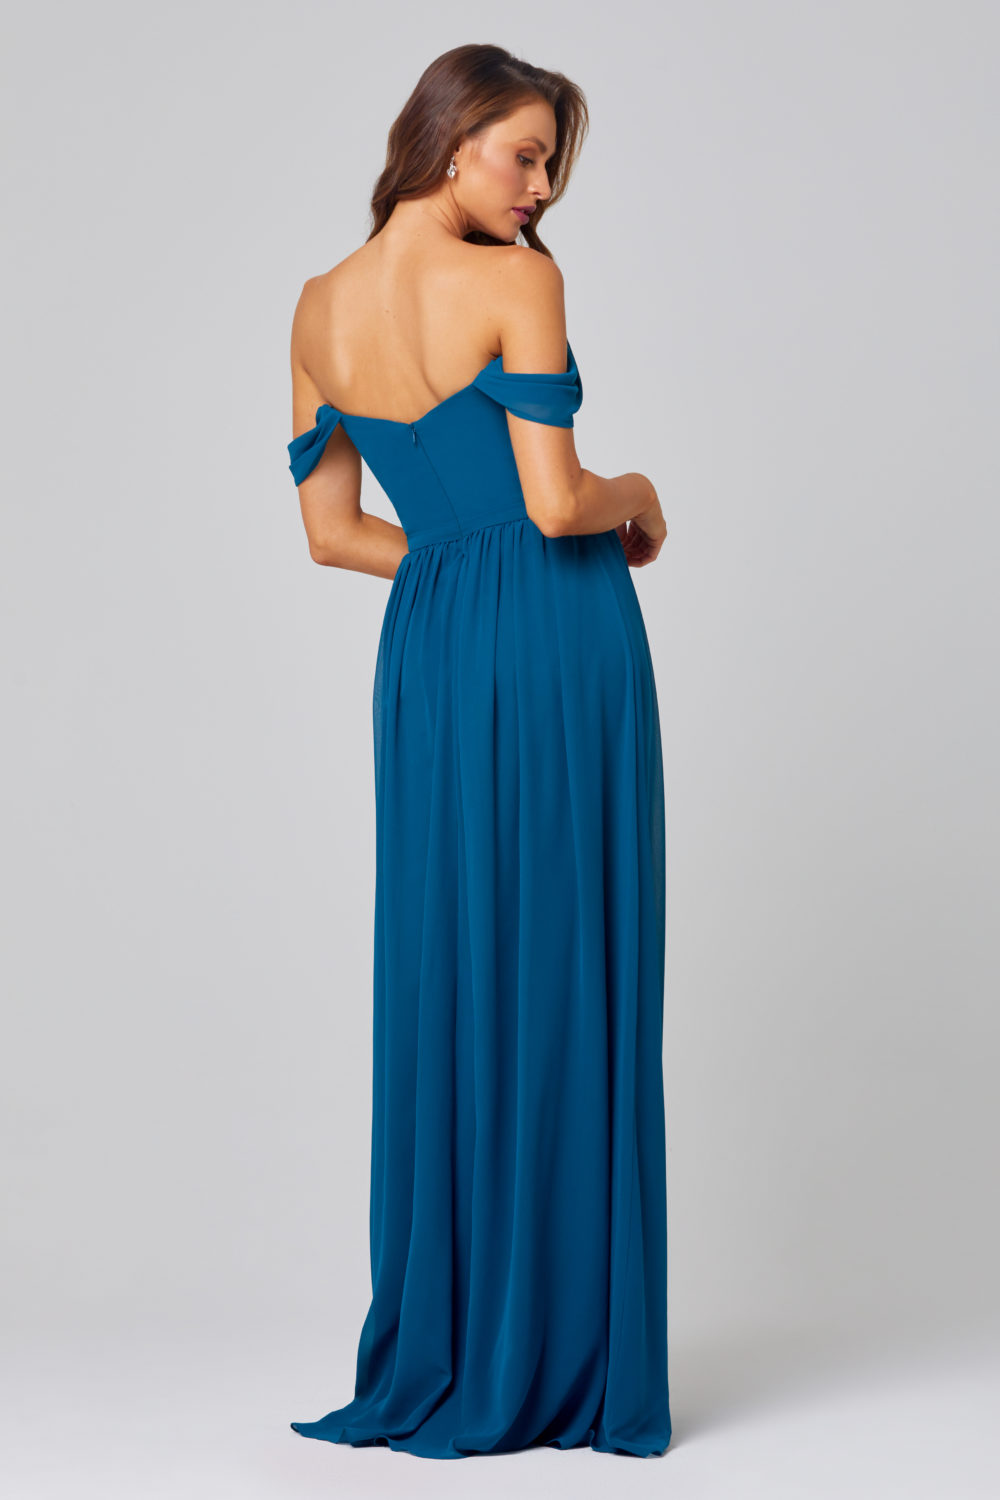 TO849-NATALIE BRIDESMAID DRESS -TEAL-BACK